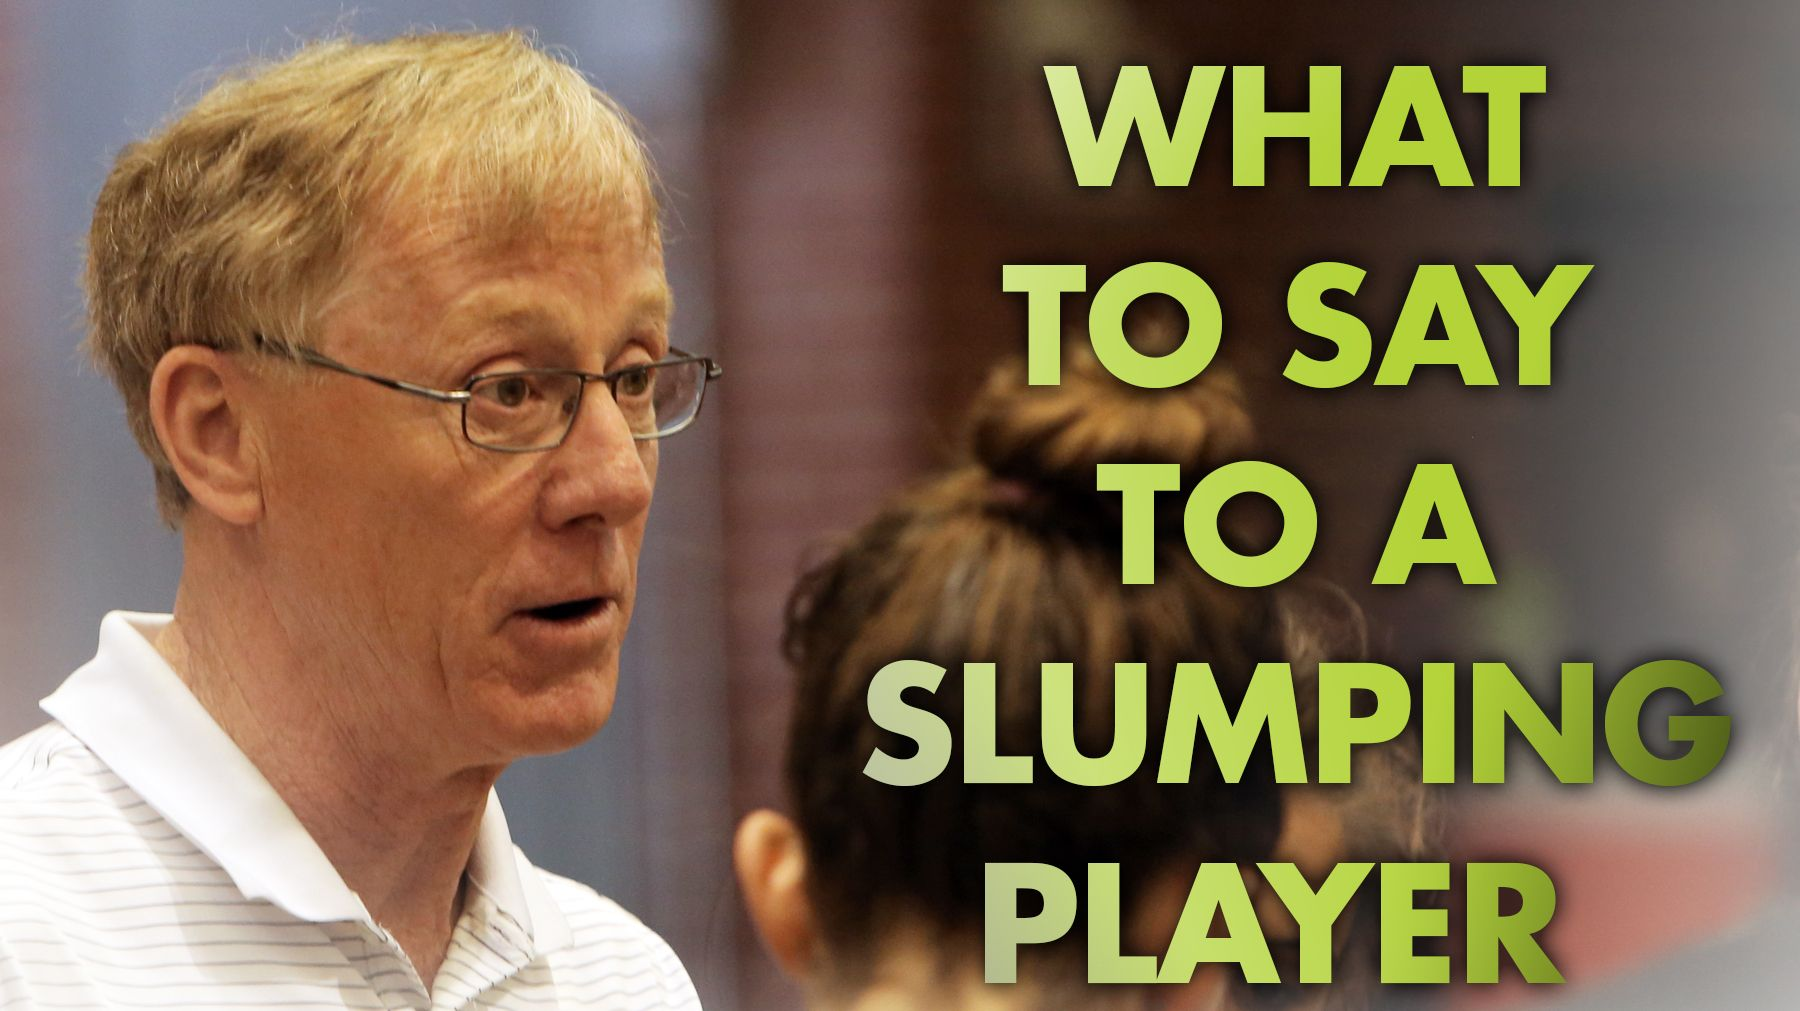 Time Out Talk What Should Coaches Say To A Slumping Player Coaching Volleyball Coach Quotes Sport Quotes Motivational